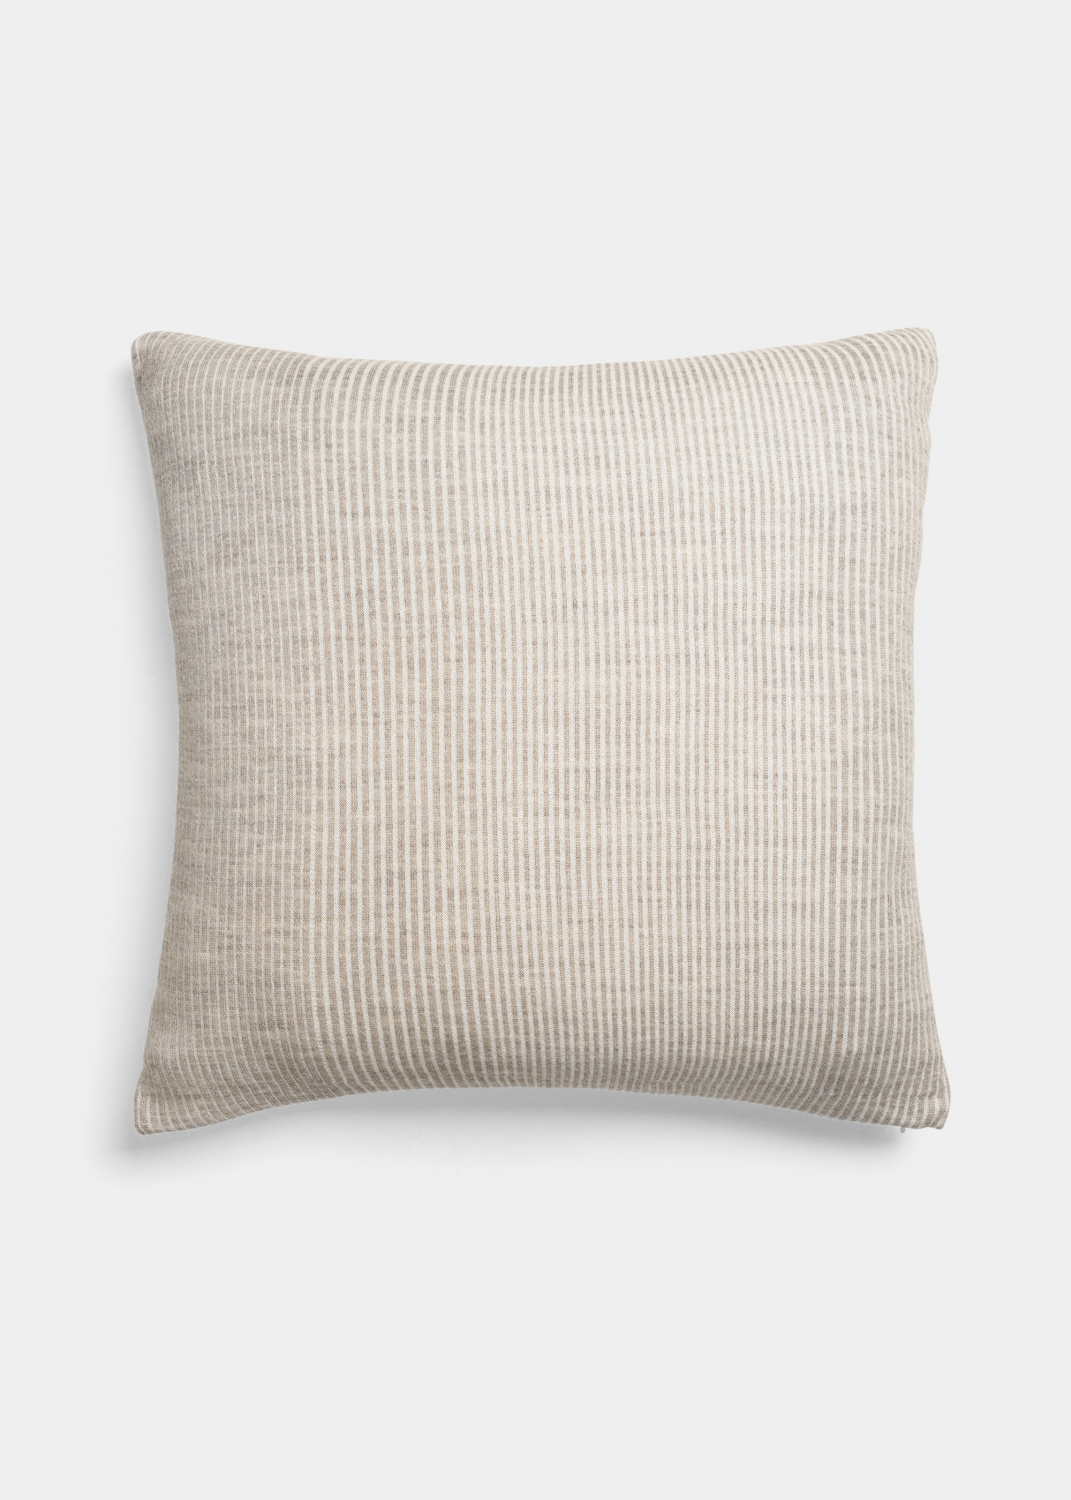 Cushions - Eigil pillow 50x50 Thumbnail